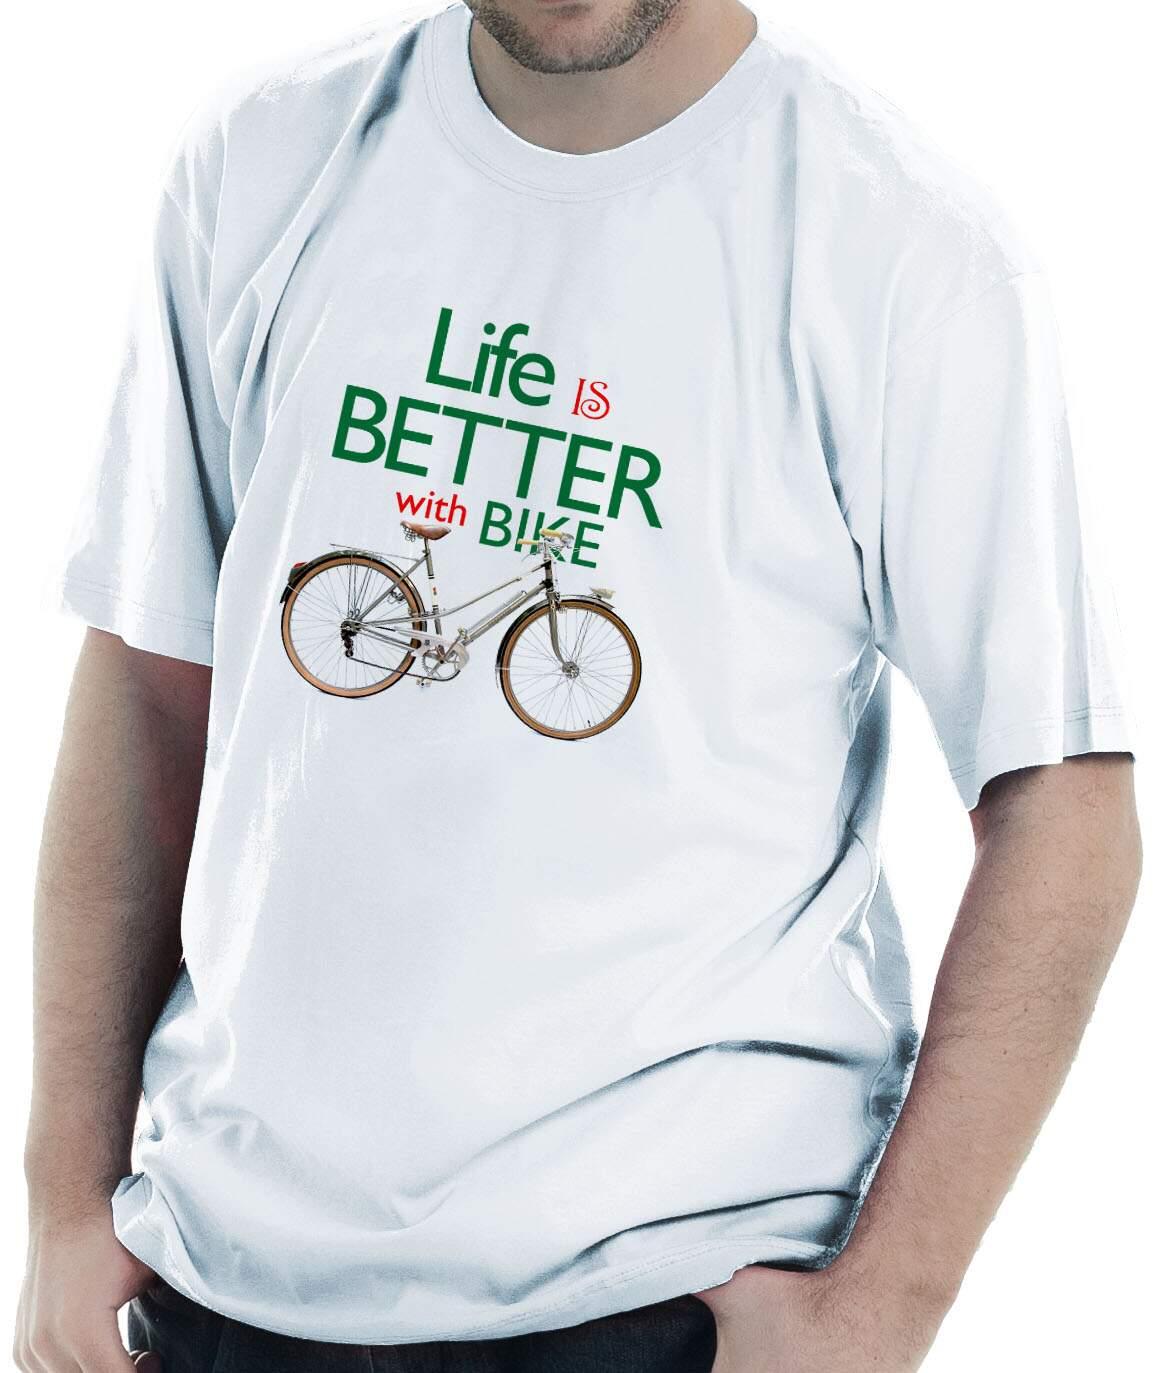 Camiseta Life is better with bike